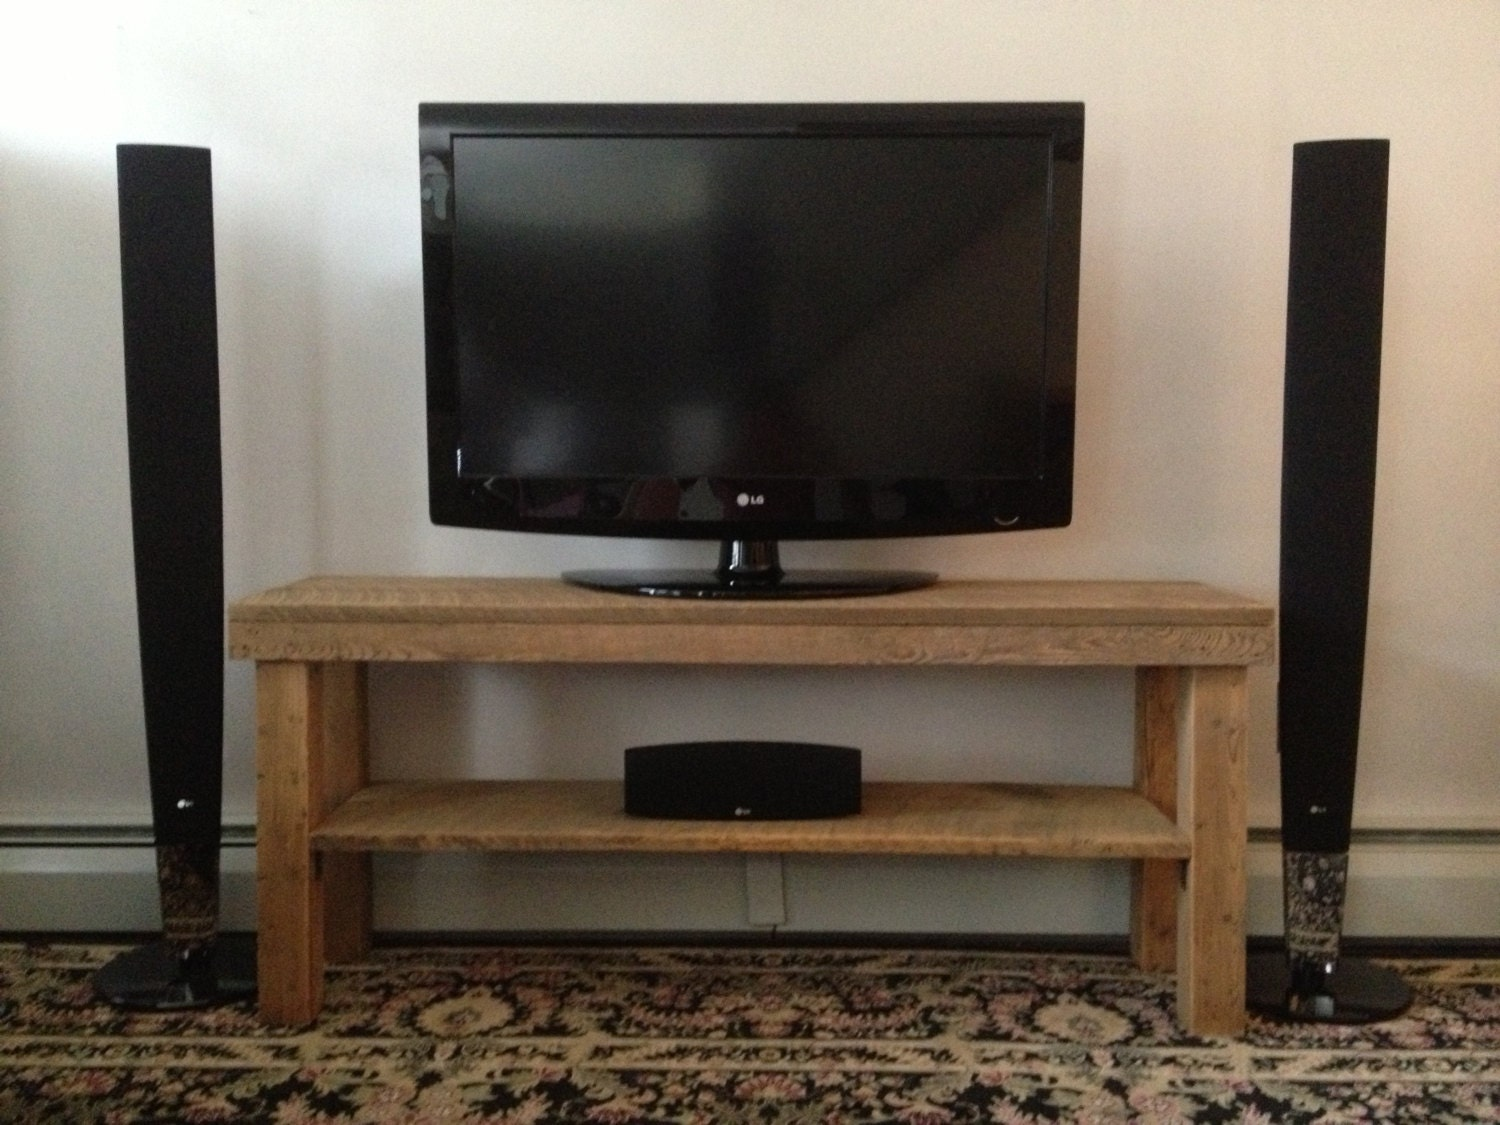 Barn wood tv stand plans free download pdf woodworking - Media consoles for small spaces plan ...